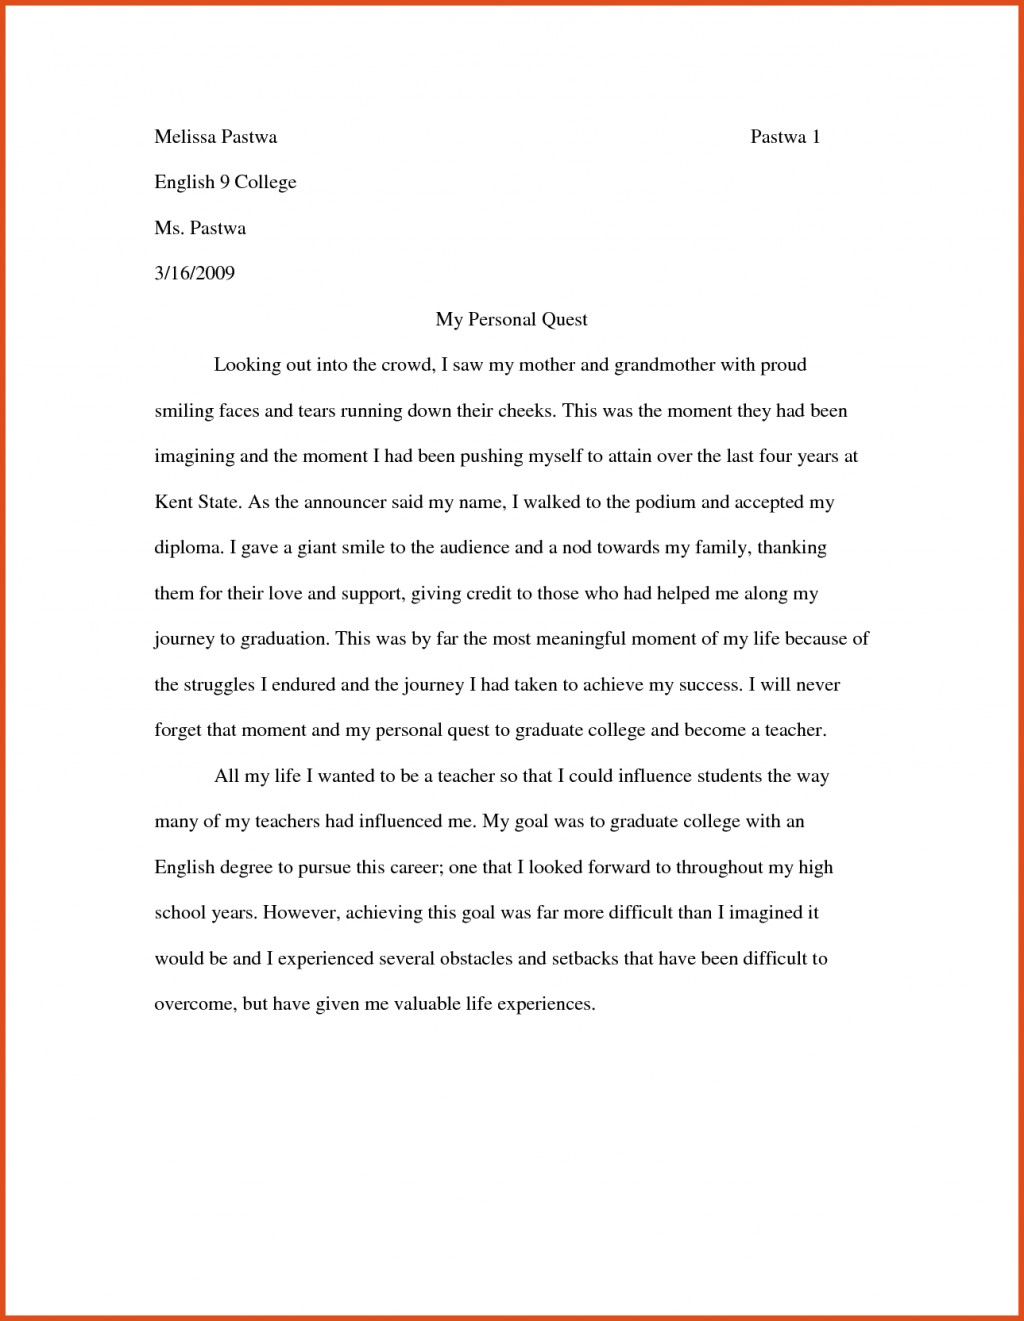 021 Application Essays How To Write An College Yesdearinc With Inspiring Perfect Writing Format For High School Students Sample Commu Astounding Essay Examples Ucf Liberty University Large